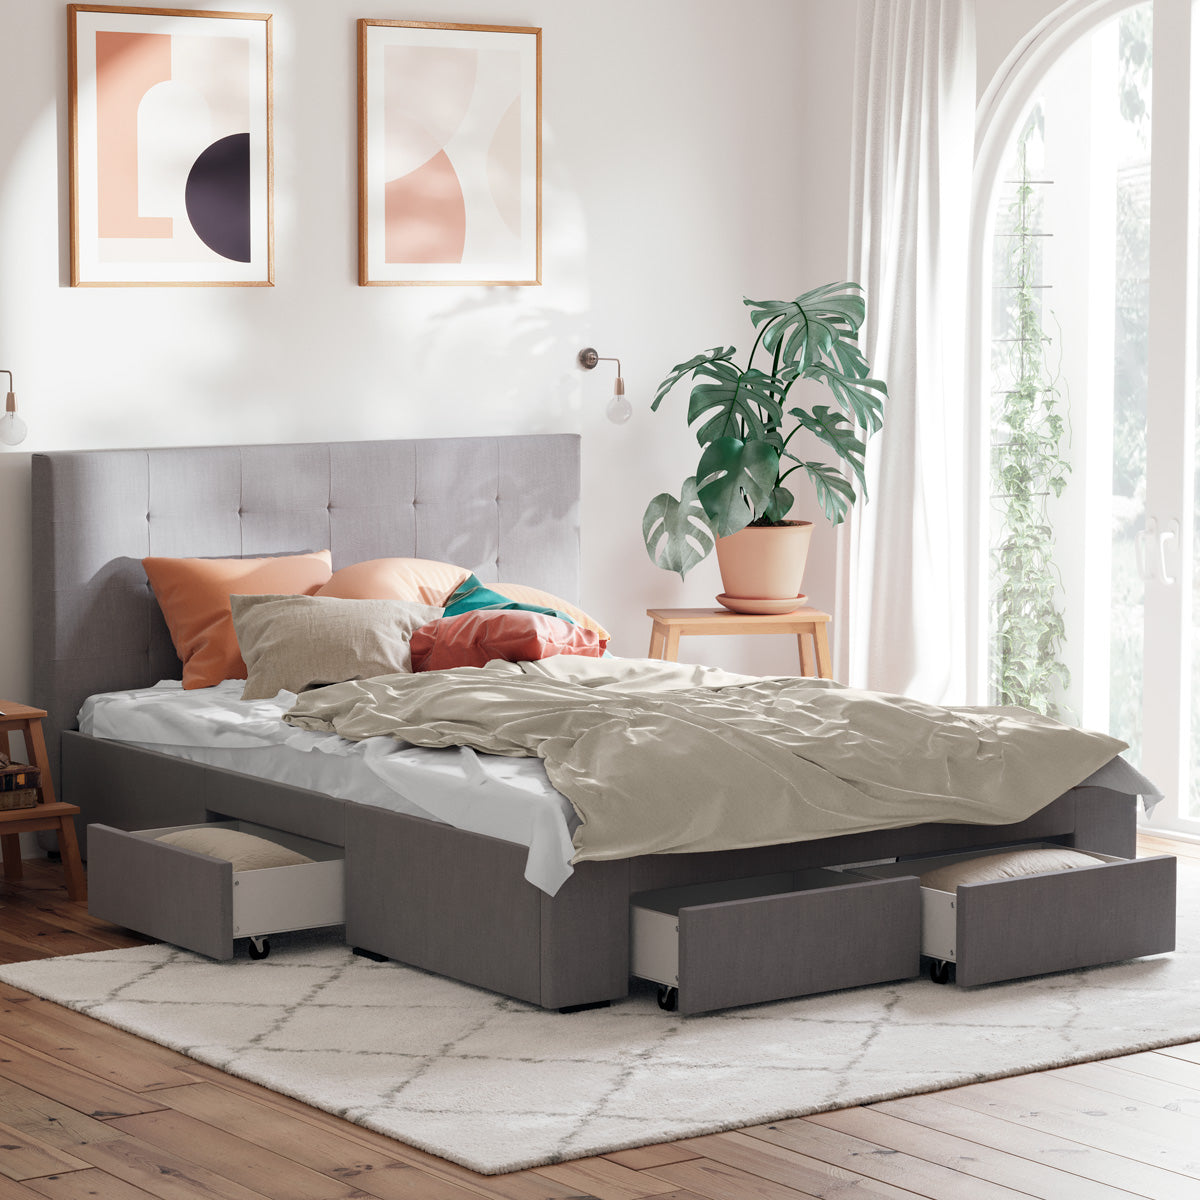 Audrey Bed Frame with Four Storage Drawers (Grey Fabric)